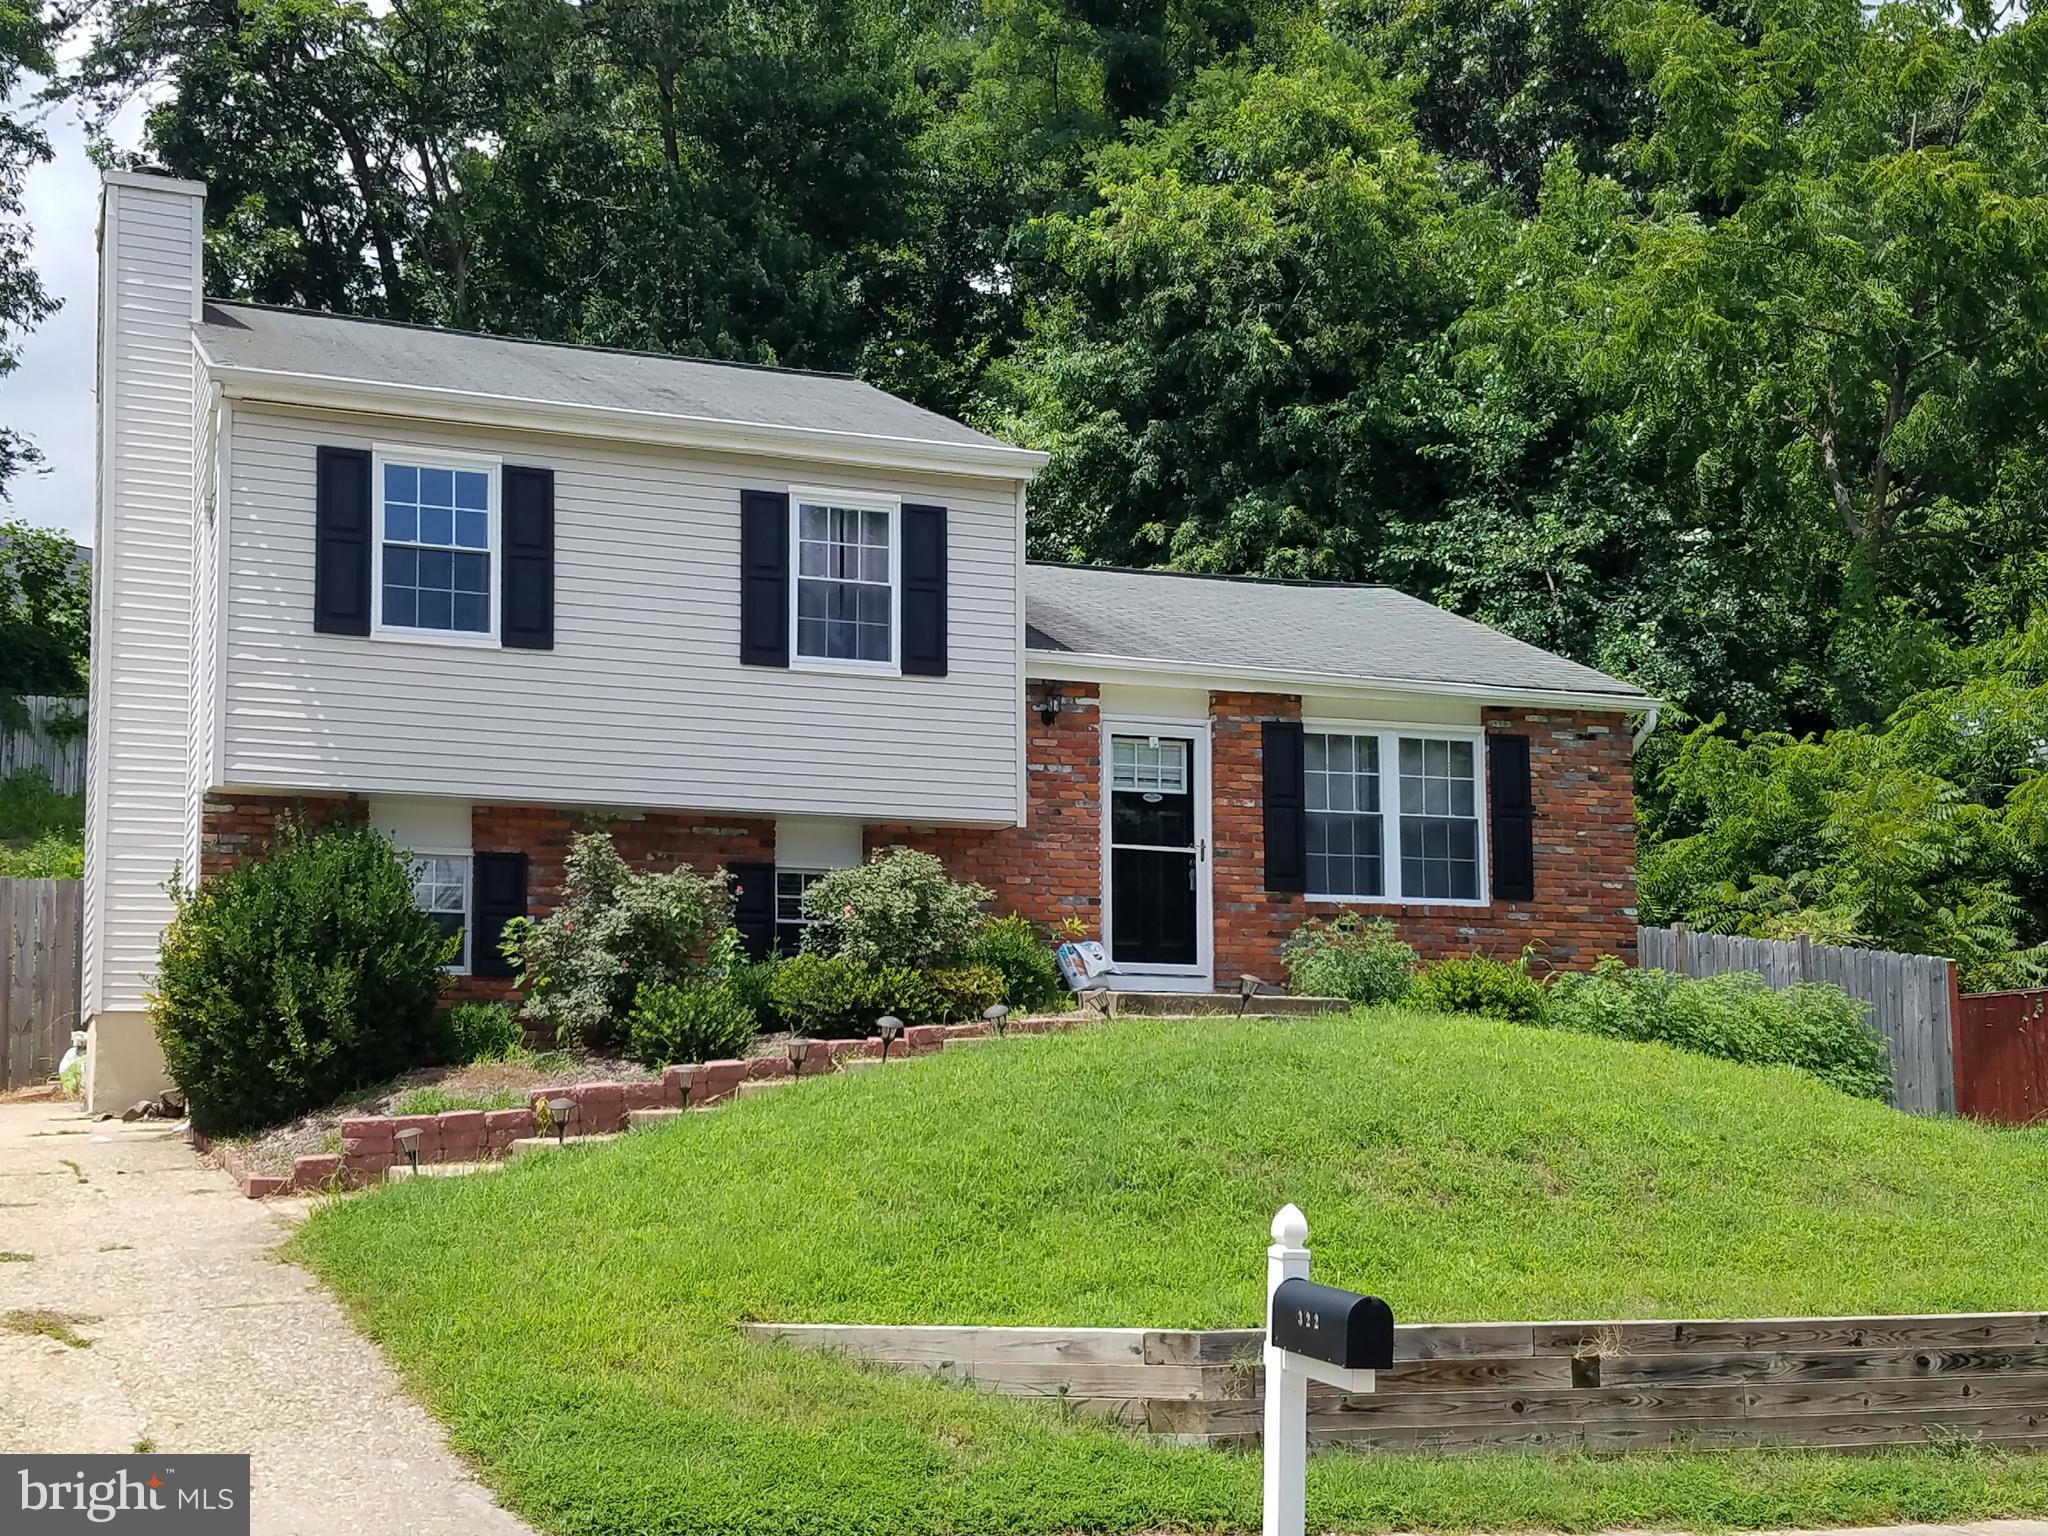 322 TERNWING DRIVE, ARNOLD, MD 21012